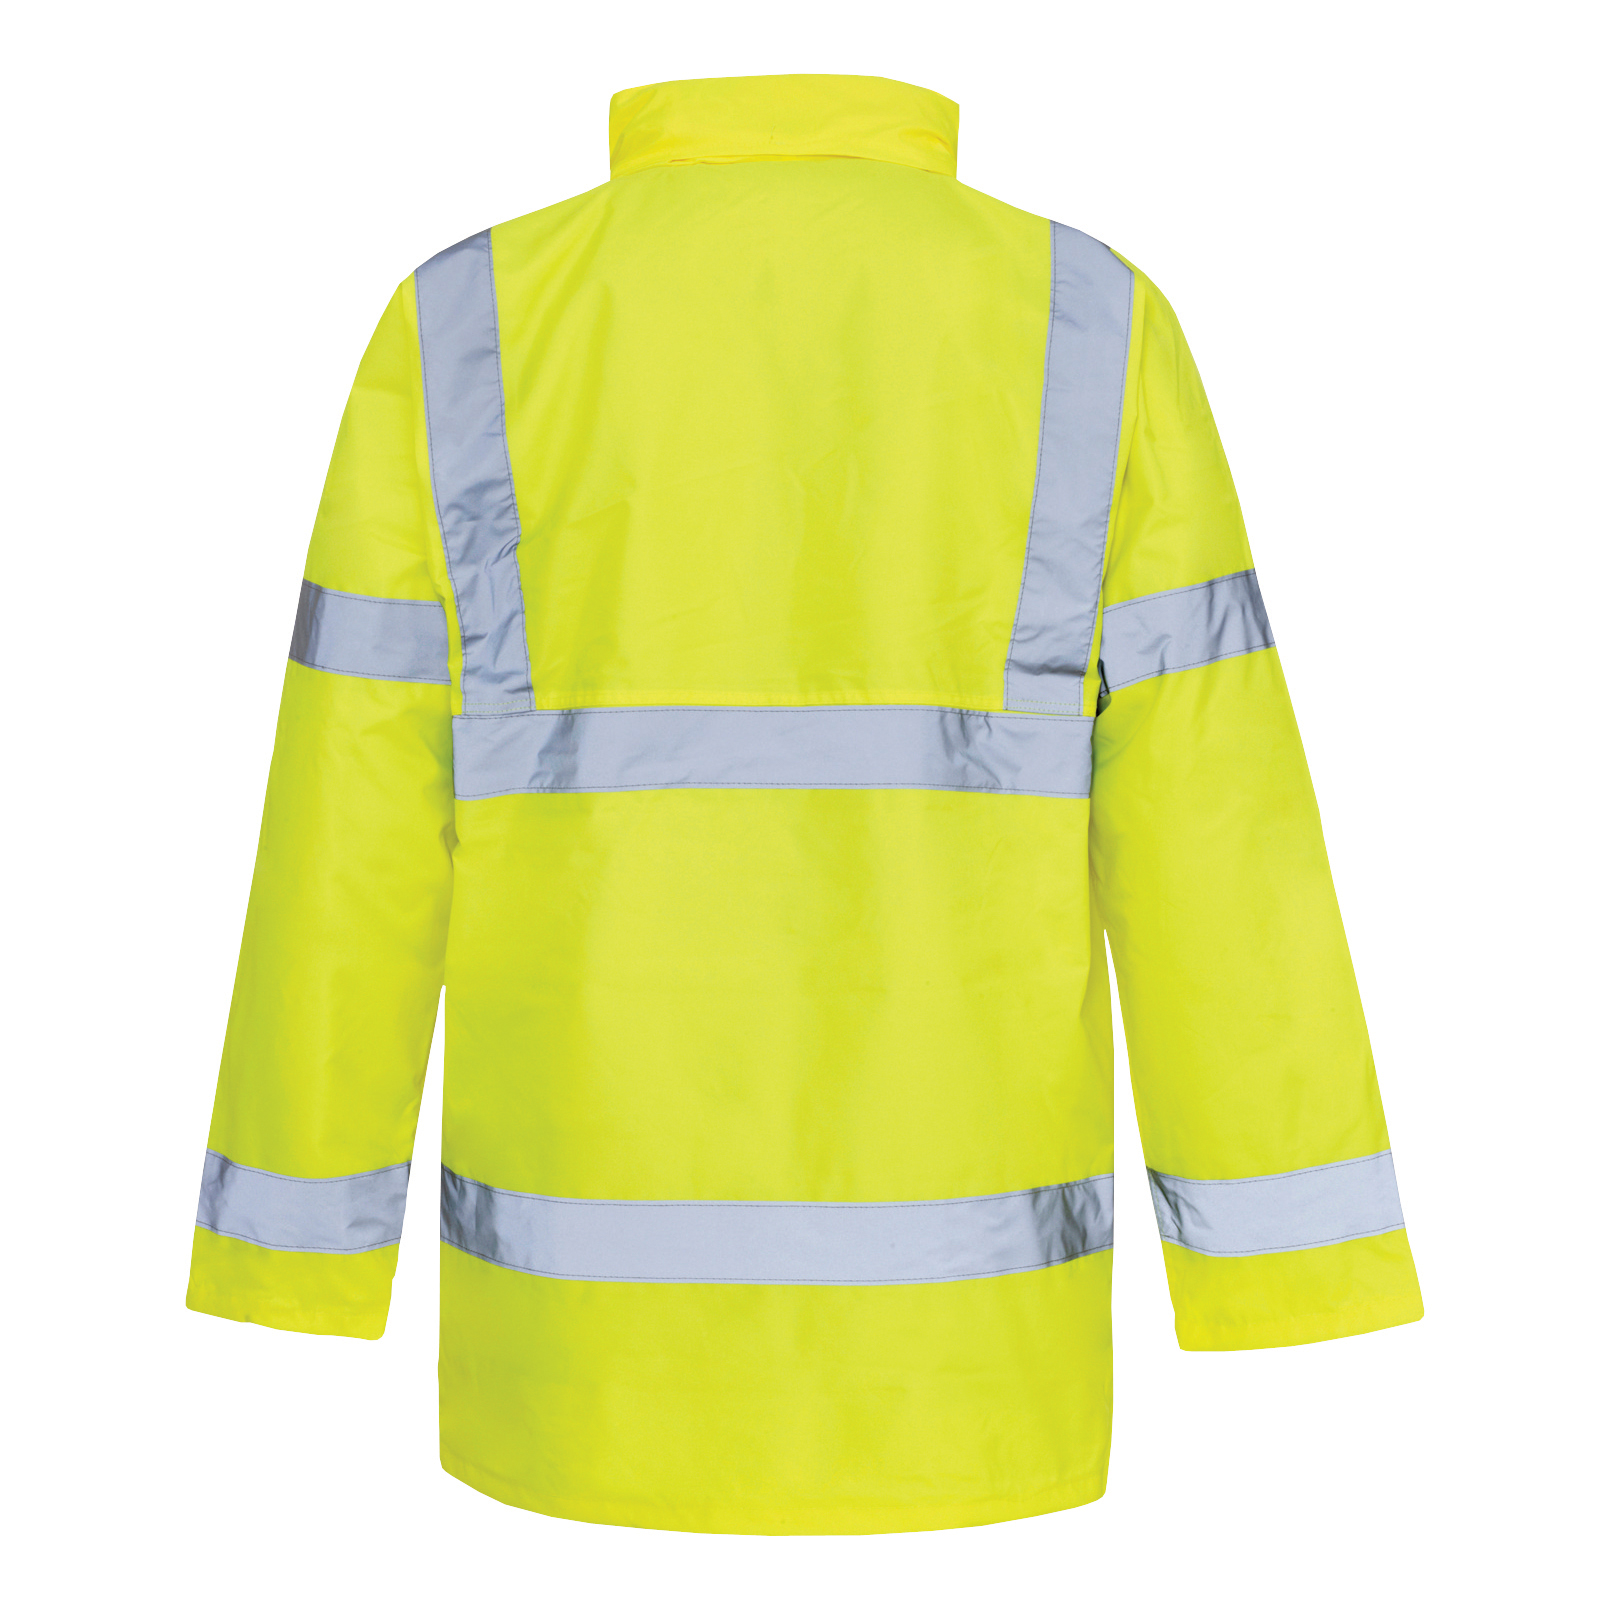 BSeen High Visibility Constructor Jacket Medium Saturn Yellow Ref CTJENGSYM *Approx 3 Day Leadtime*